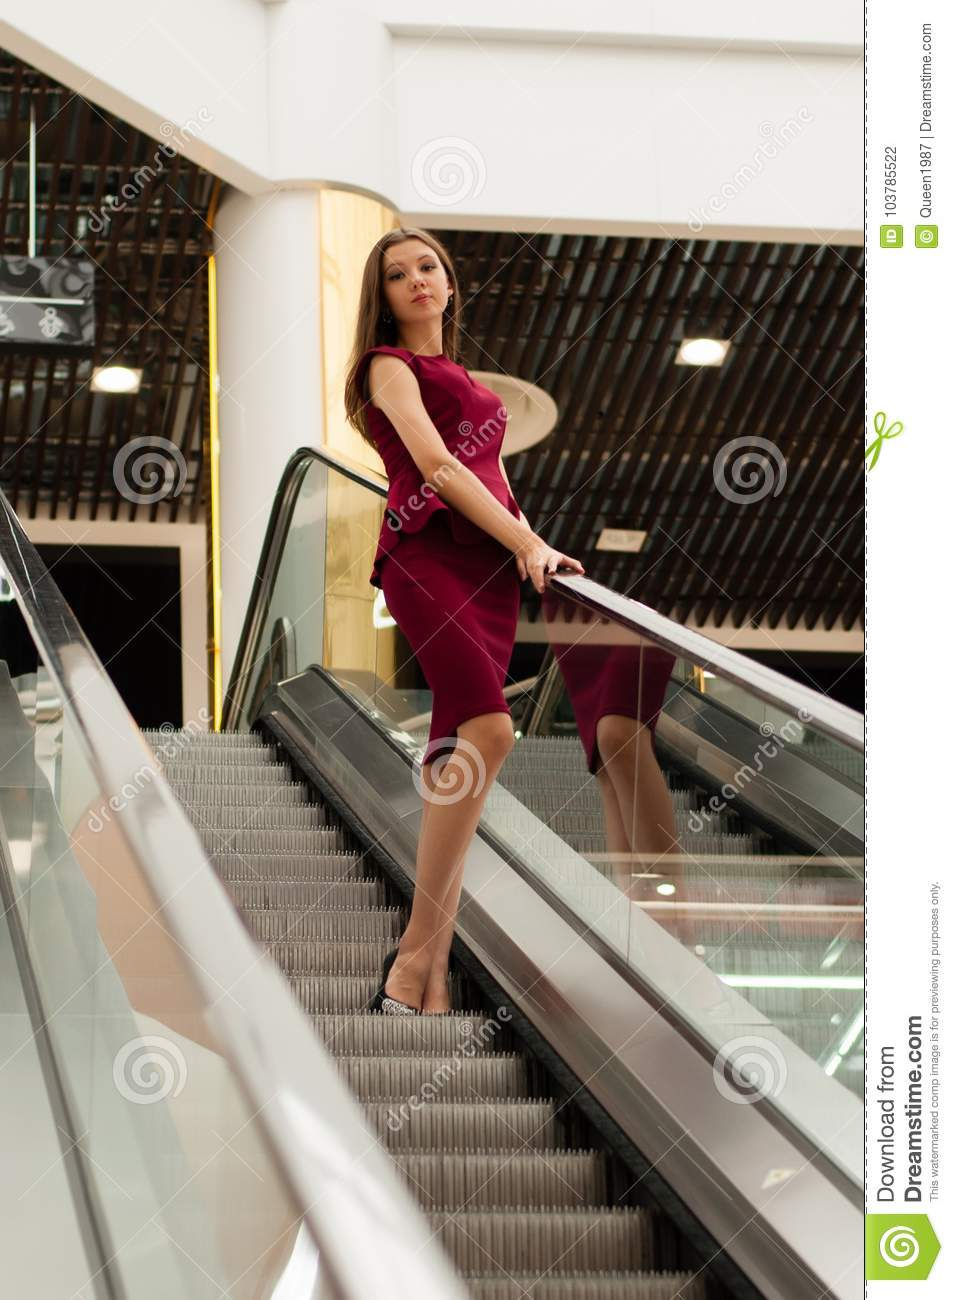 Girl In The Mall On The Escalator Stock Photo - Image of